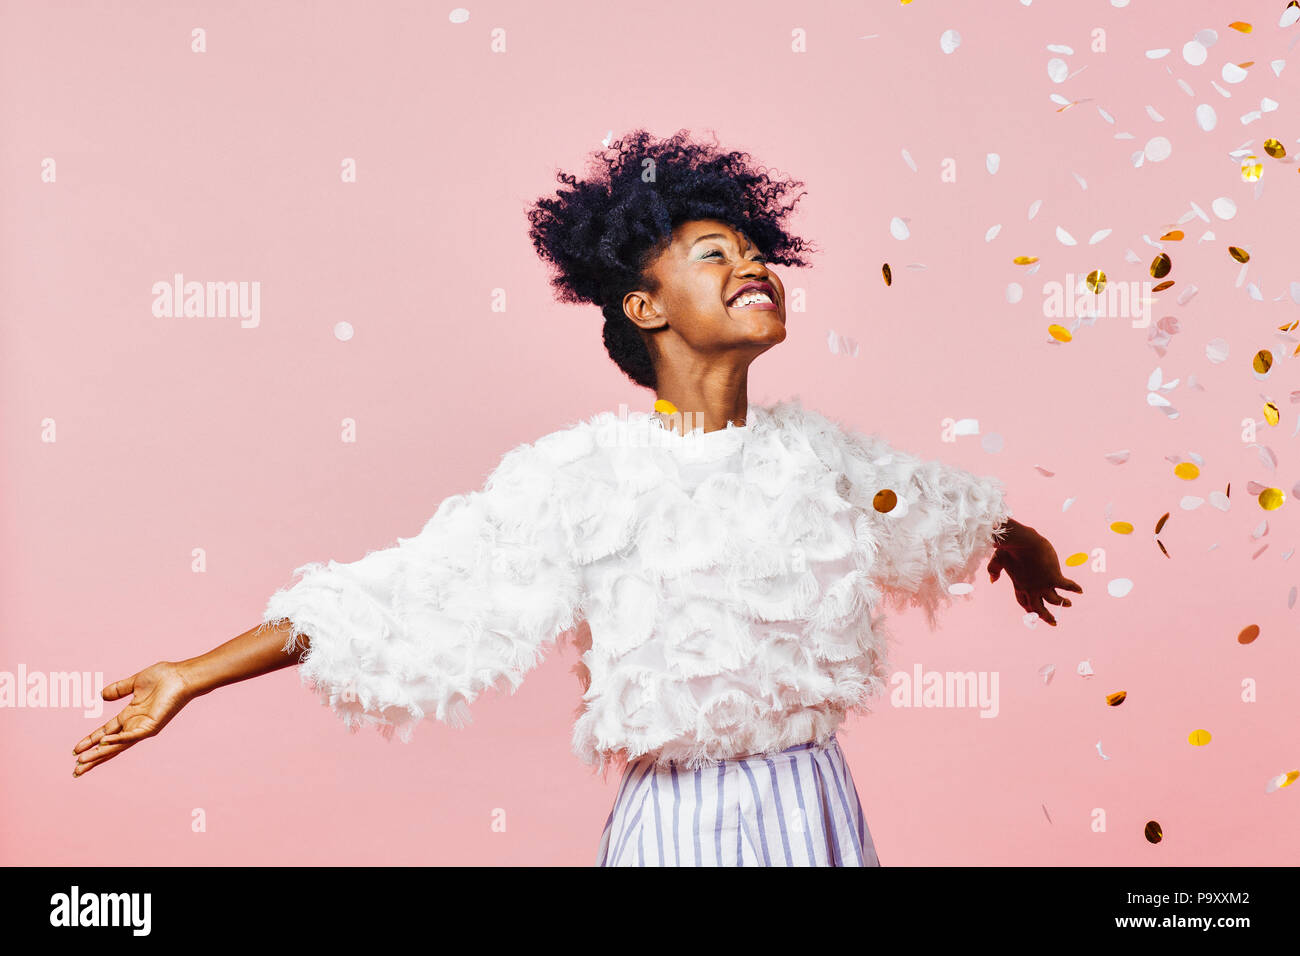 A magical time - Portrait of a very happy girl with arms out, smiling and looking up - Stock Image